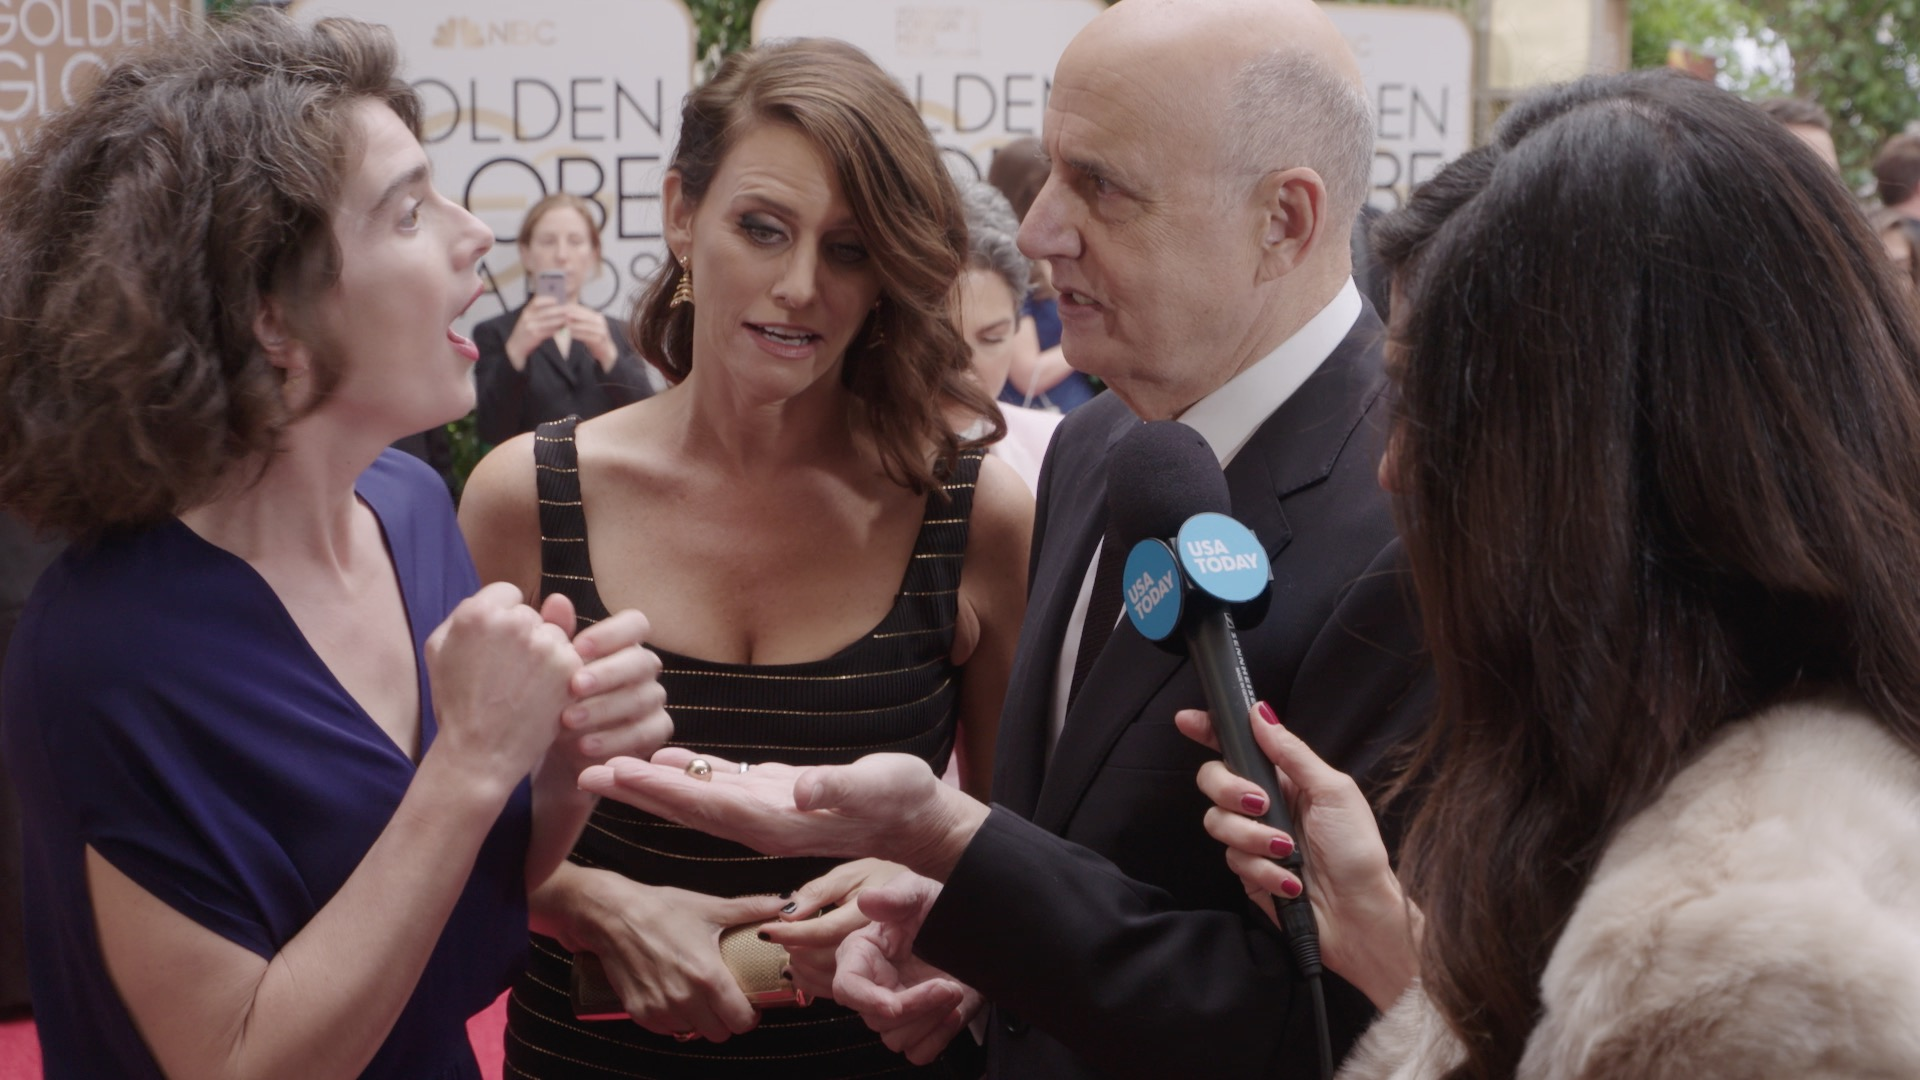 'Transparent' cast acts like actual family on the red carpet